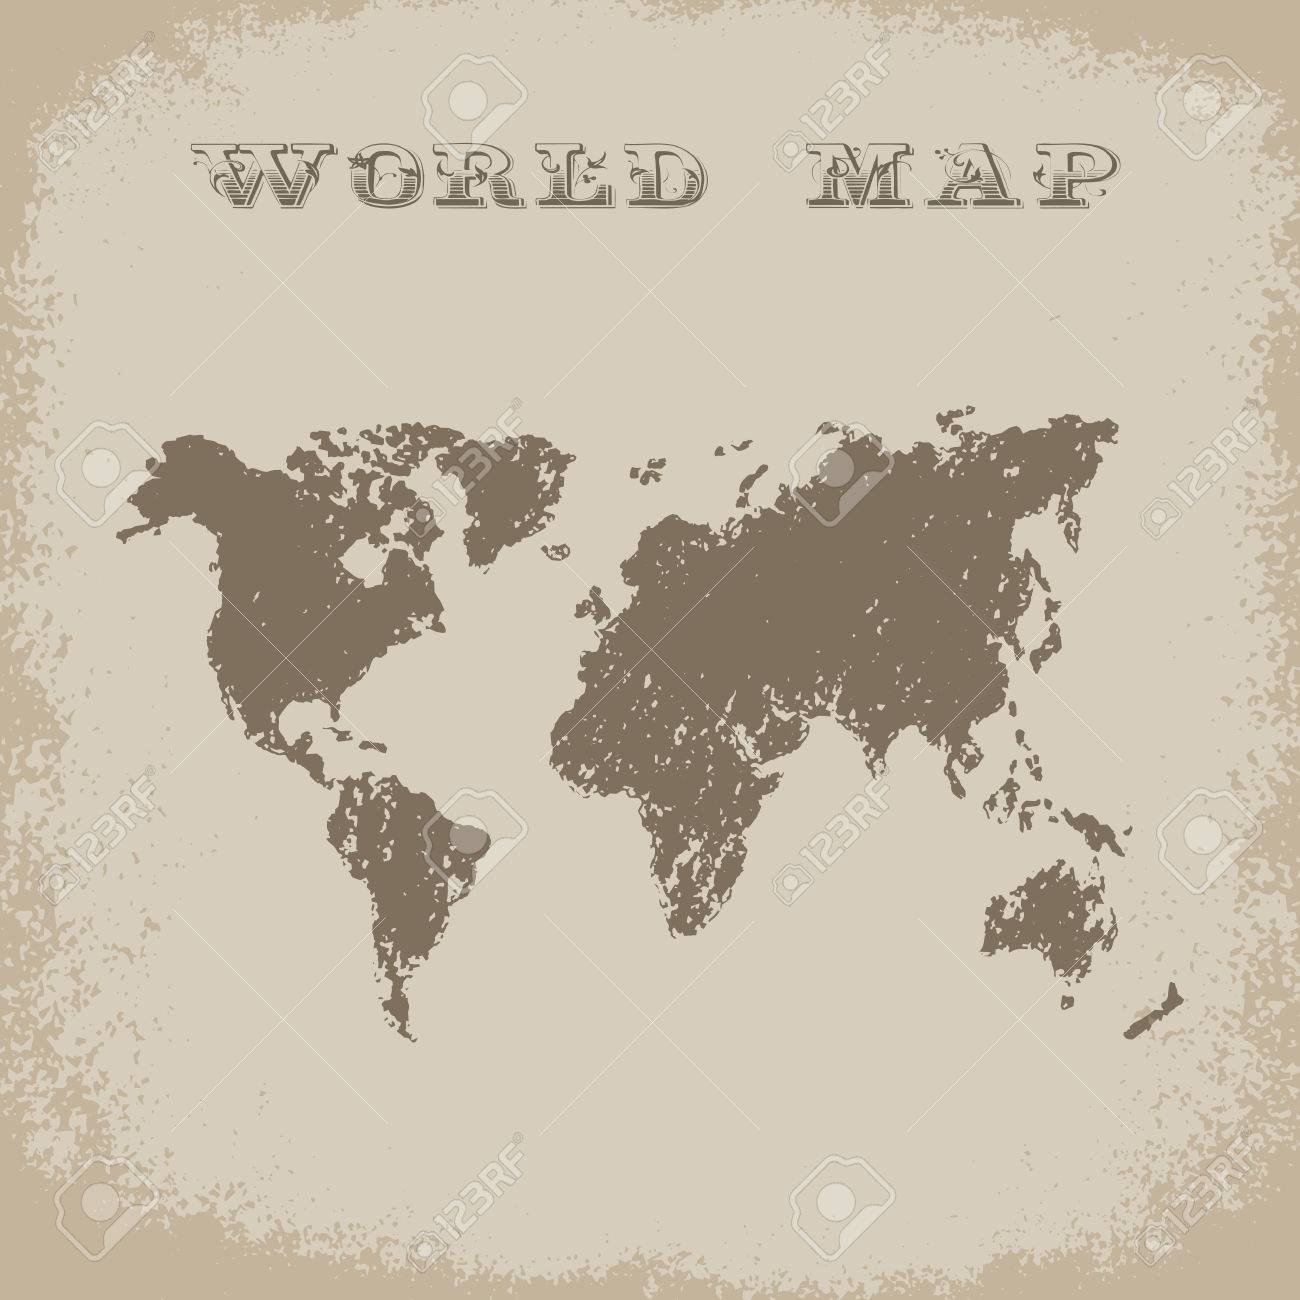 World map in grunge style vector ilustrartion geography background world map in grunge style vector ilustrartion geography background adventure style journey gumiabroncs Gallery